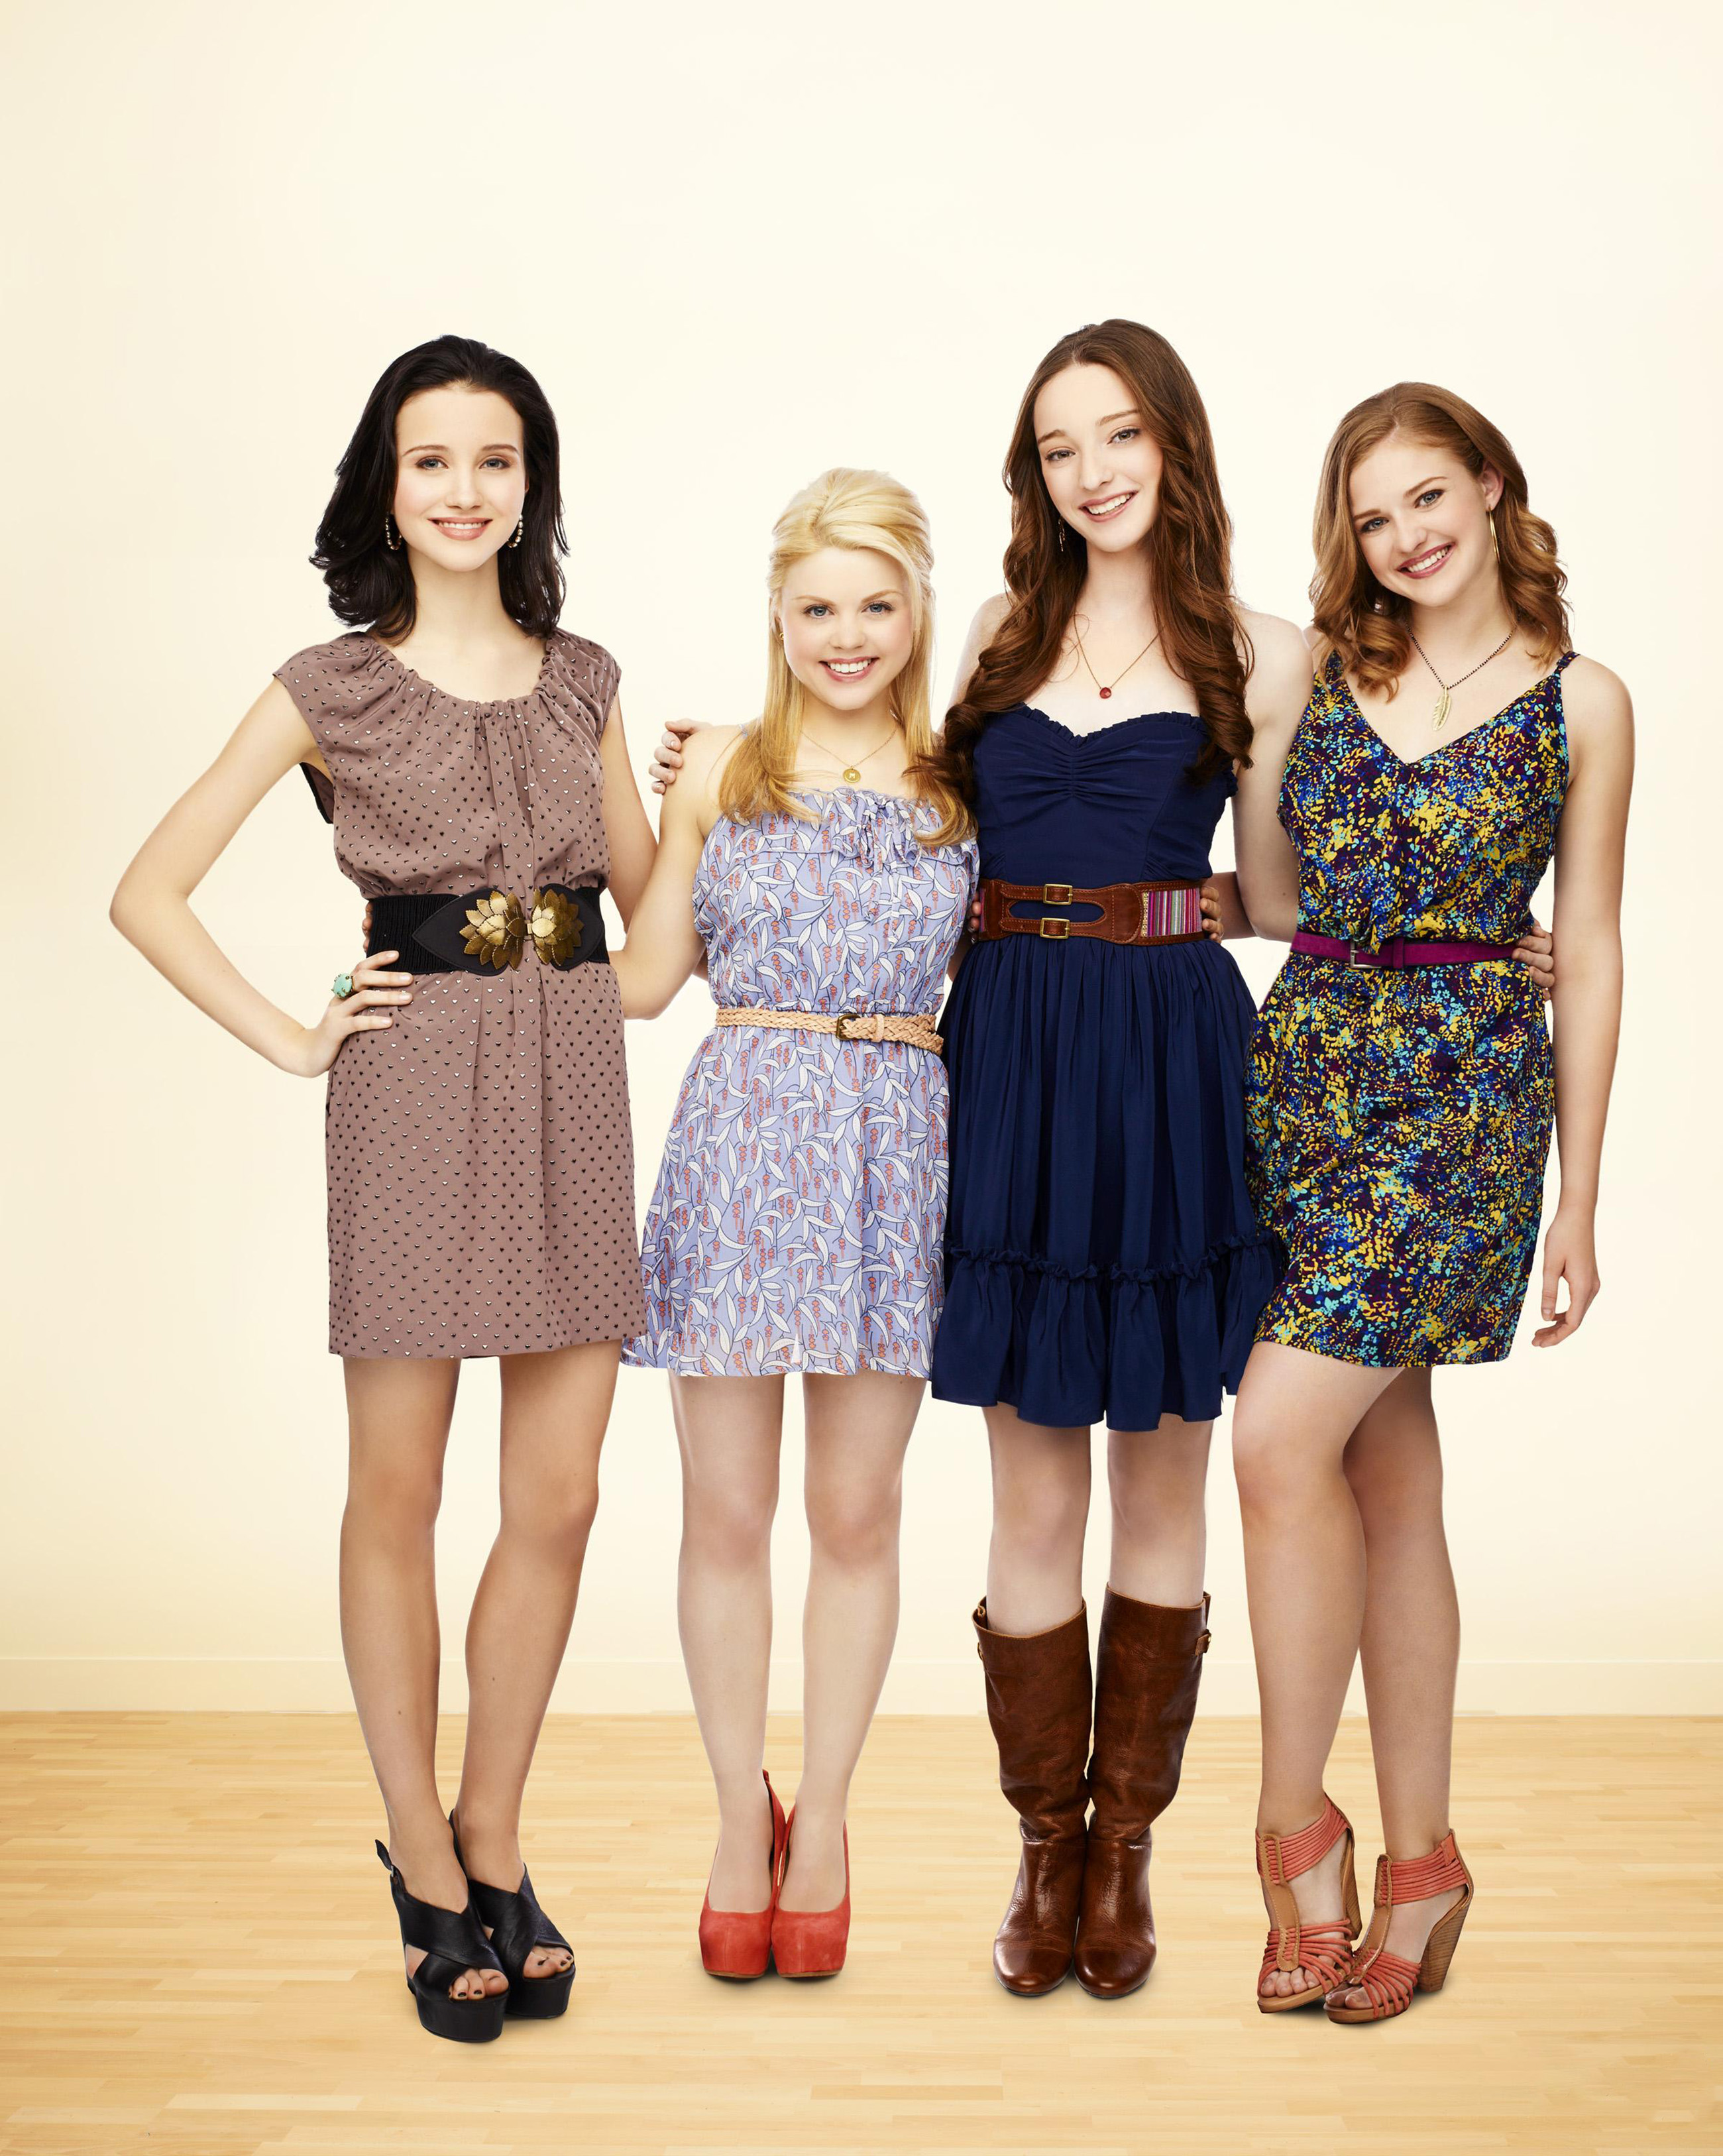 Bunheads Tv Series Photos Dvdbash